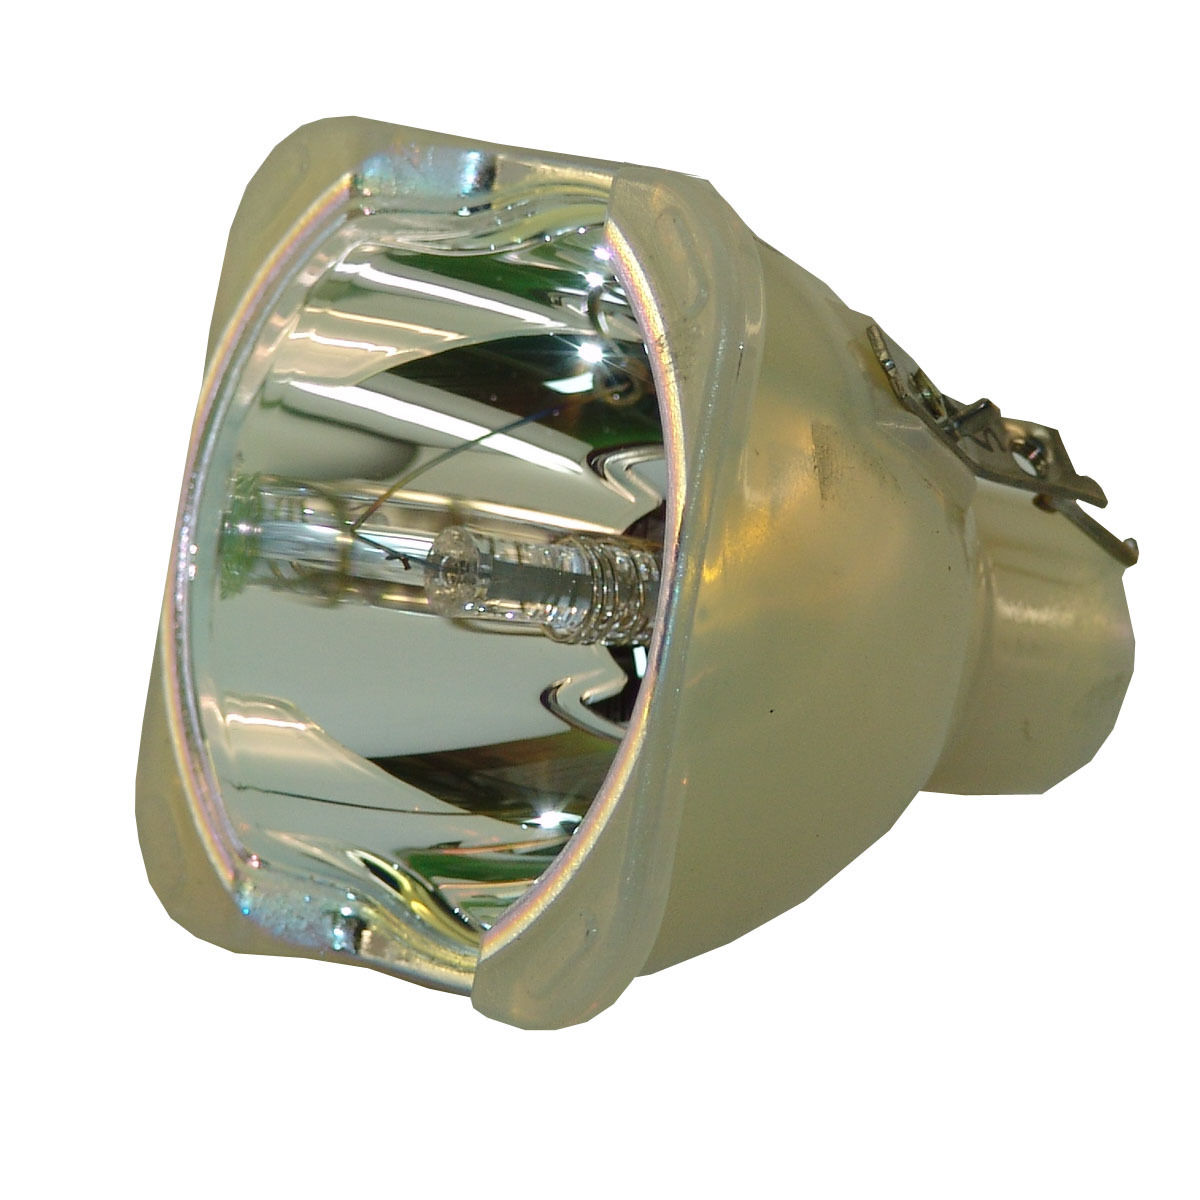 Compatible Bare Bulb BL-FU300A BLFU300A SP.8BH01GC01 for OPTOMA TX1080 EP1080 Projector Lamp Bulb without housing